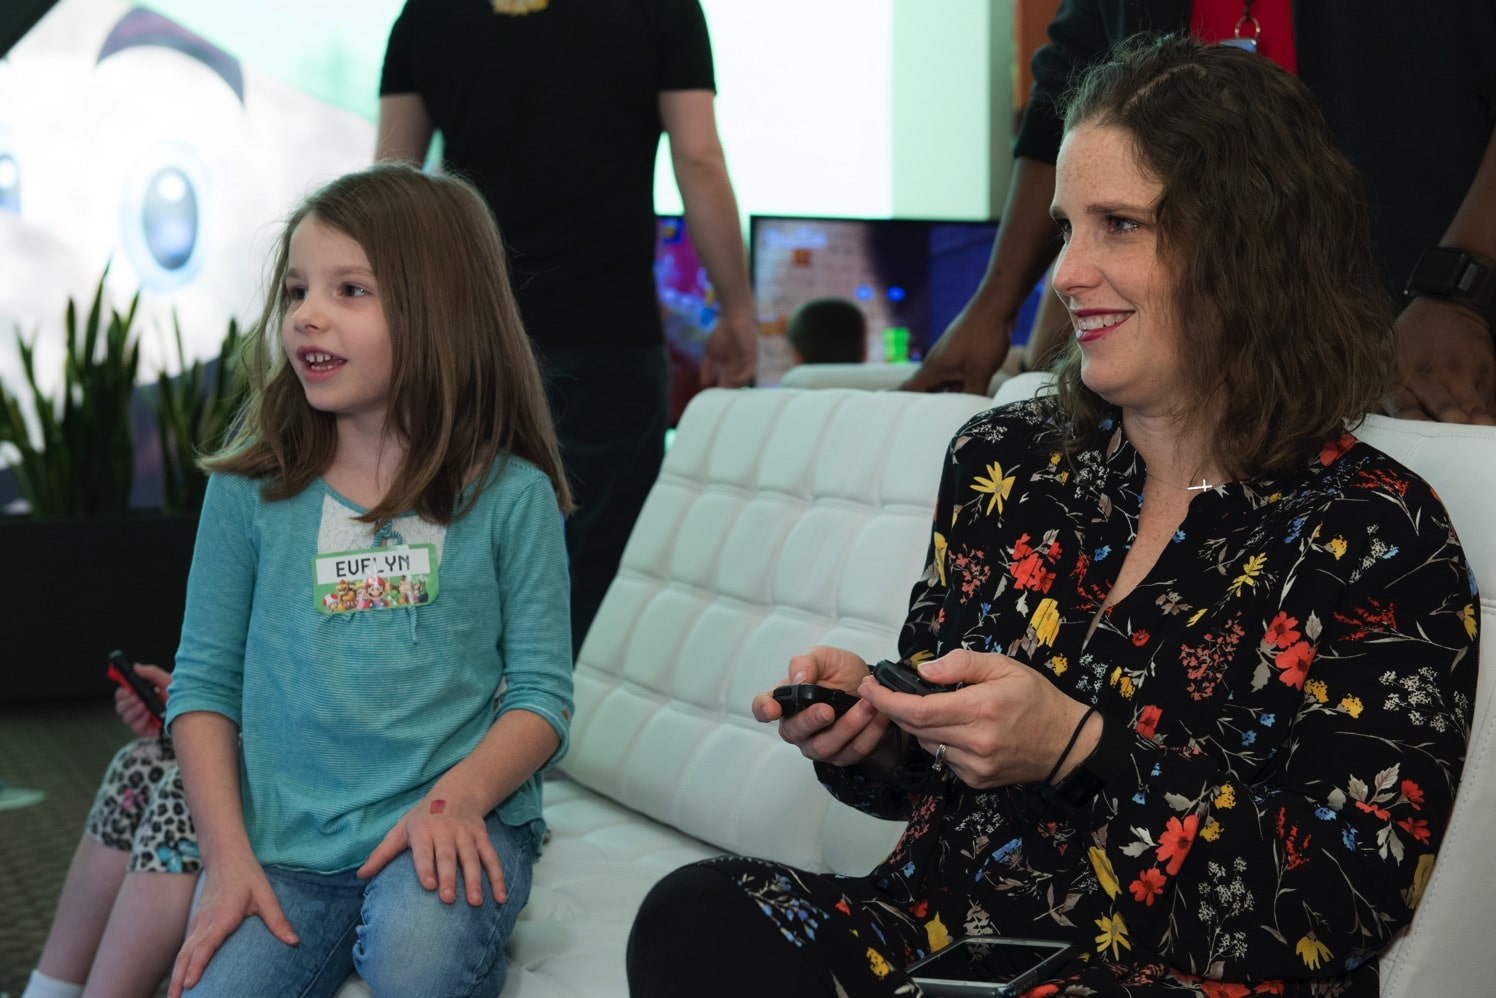 Mommy and e with nintendo switch